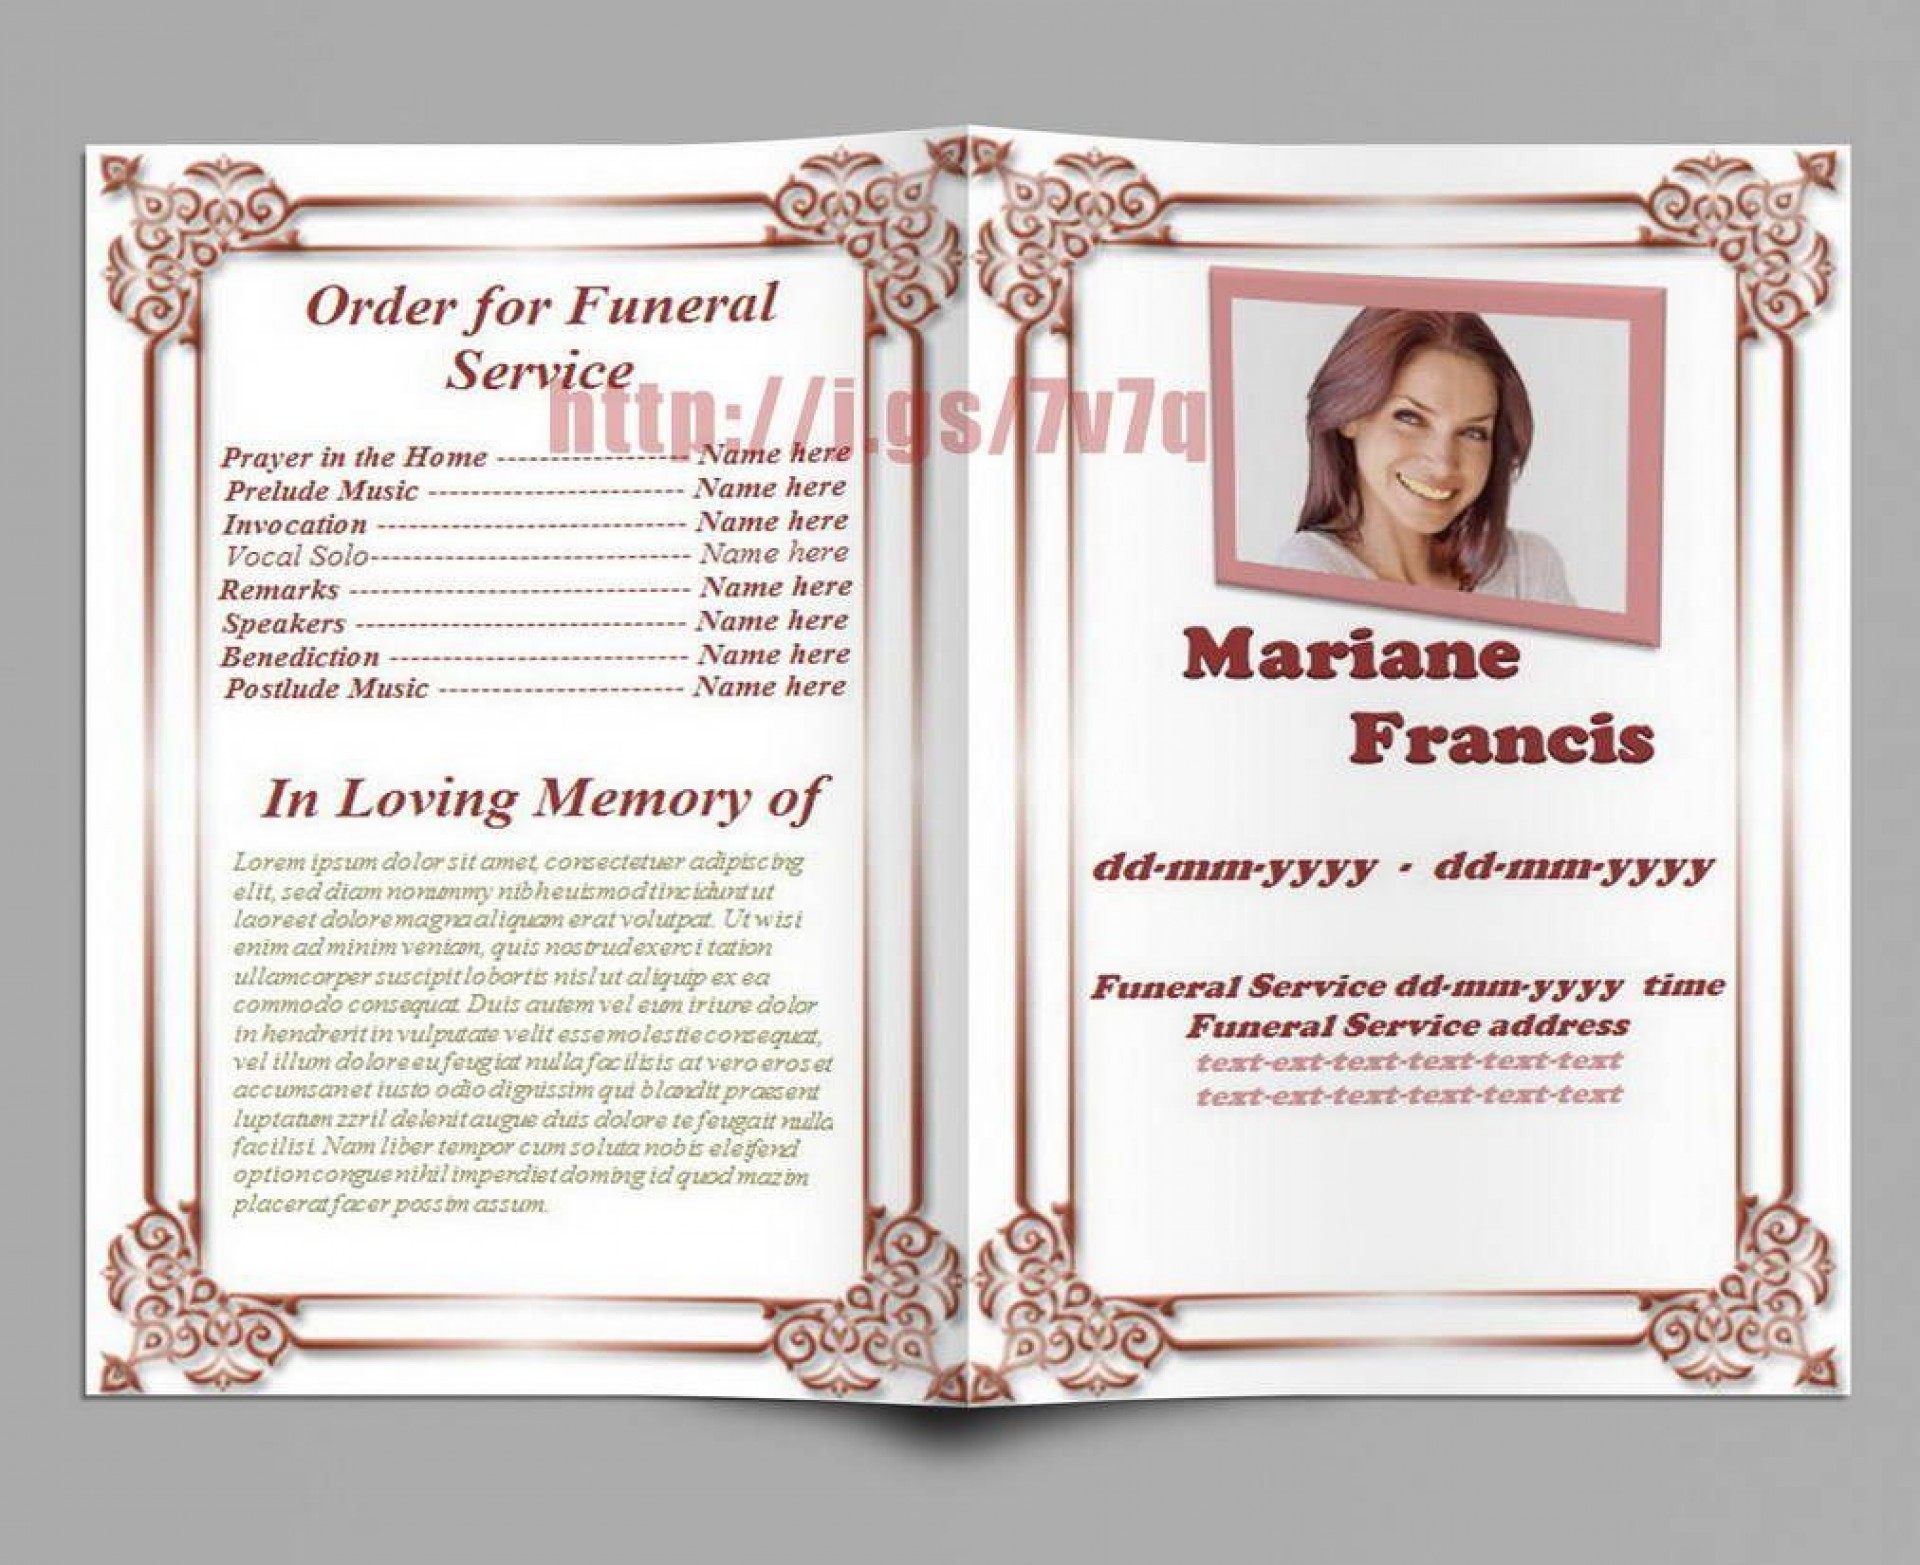 004 Awesome Funeral Program Template Free High Resolution  Blank Microsoft Word Layout Editable Uk1920